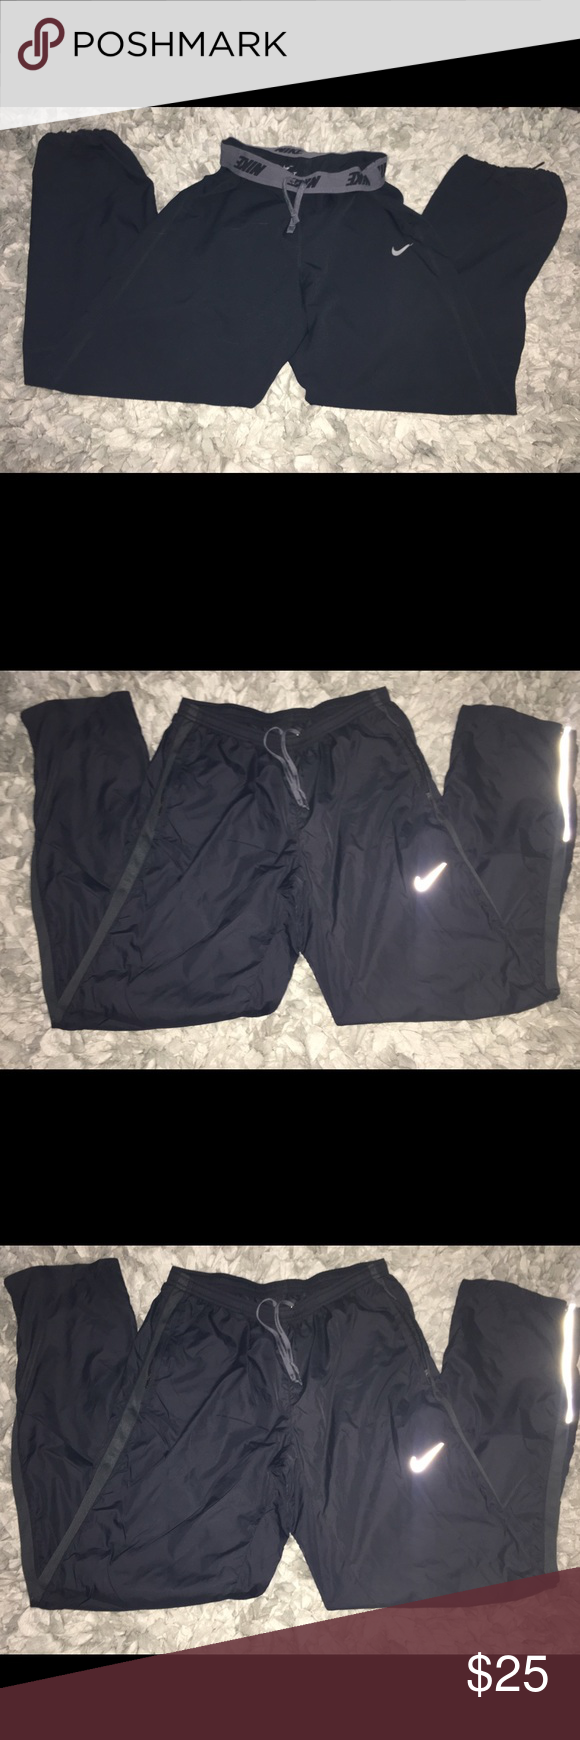 Black Nike Joggers Has reflective Nike check and also on the side of the legs. Nike Pants Track Pants & Joggers